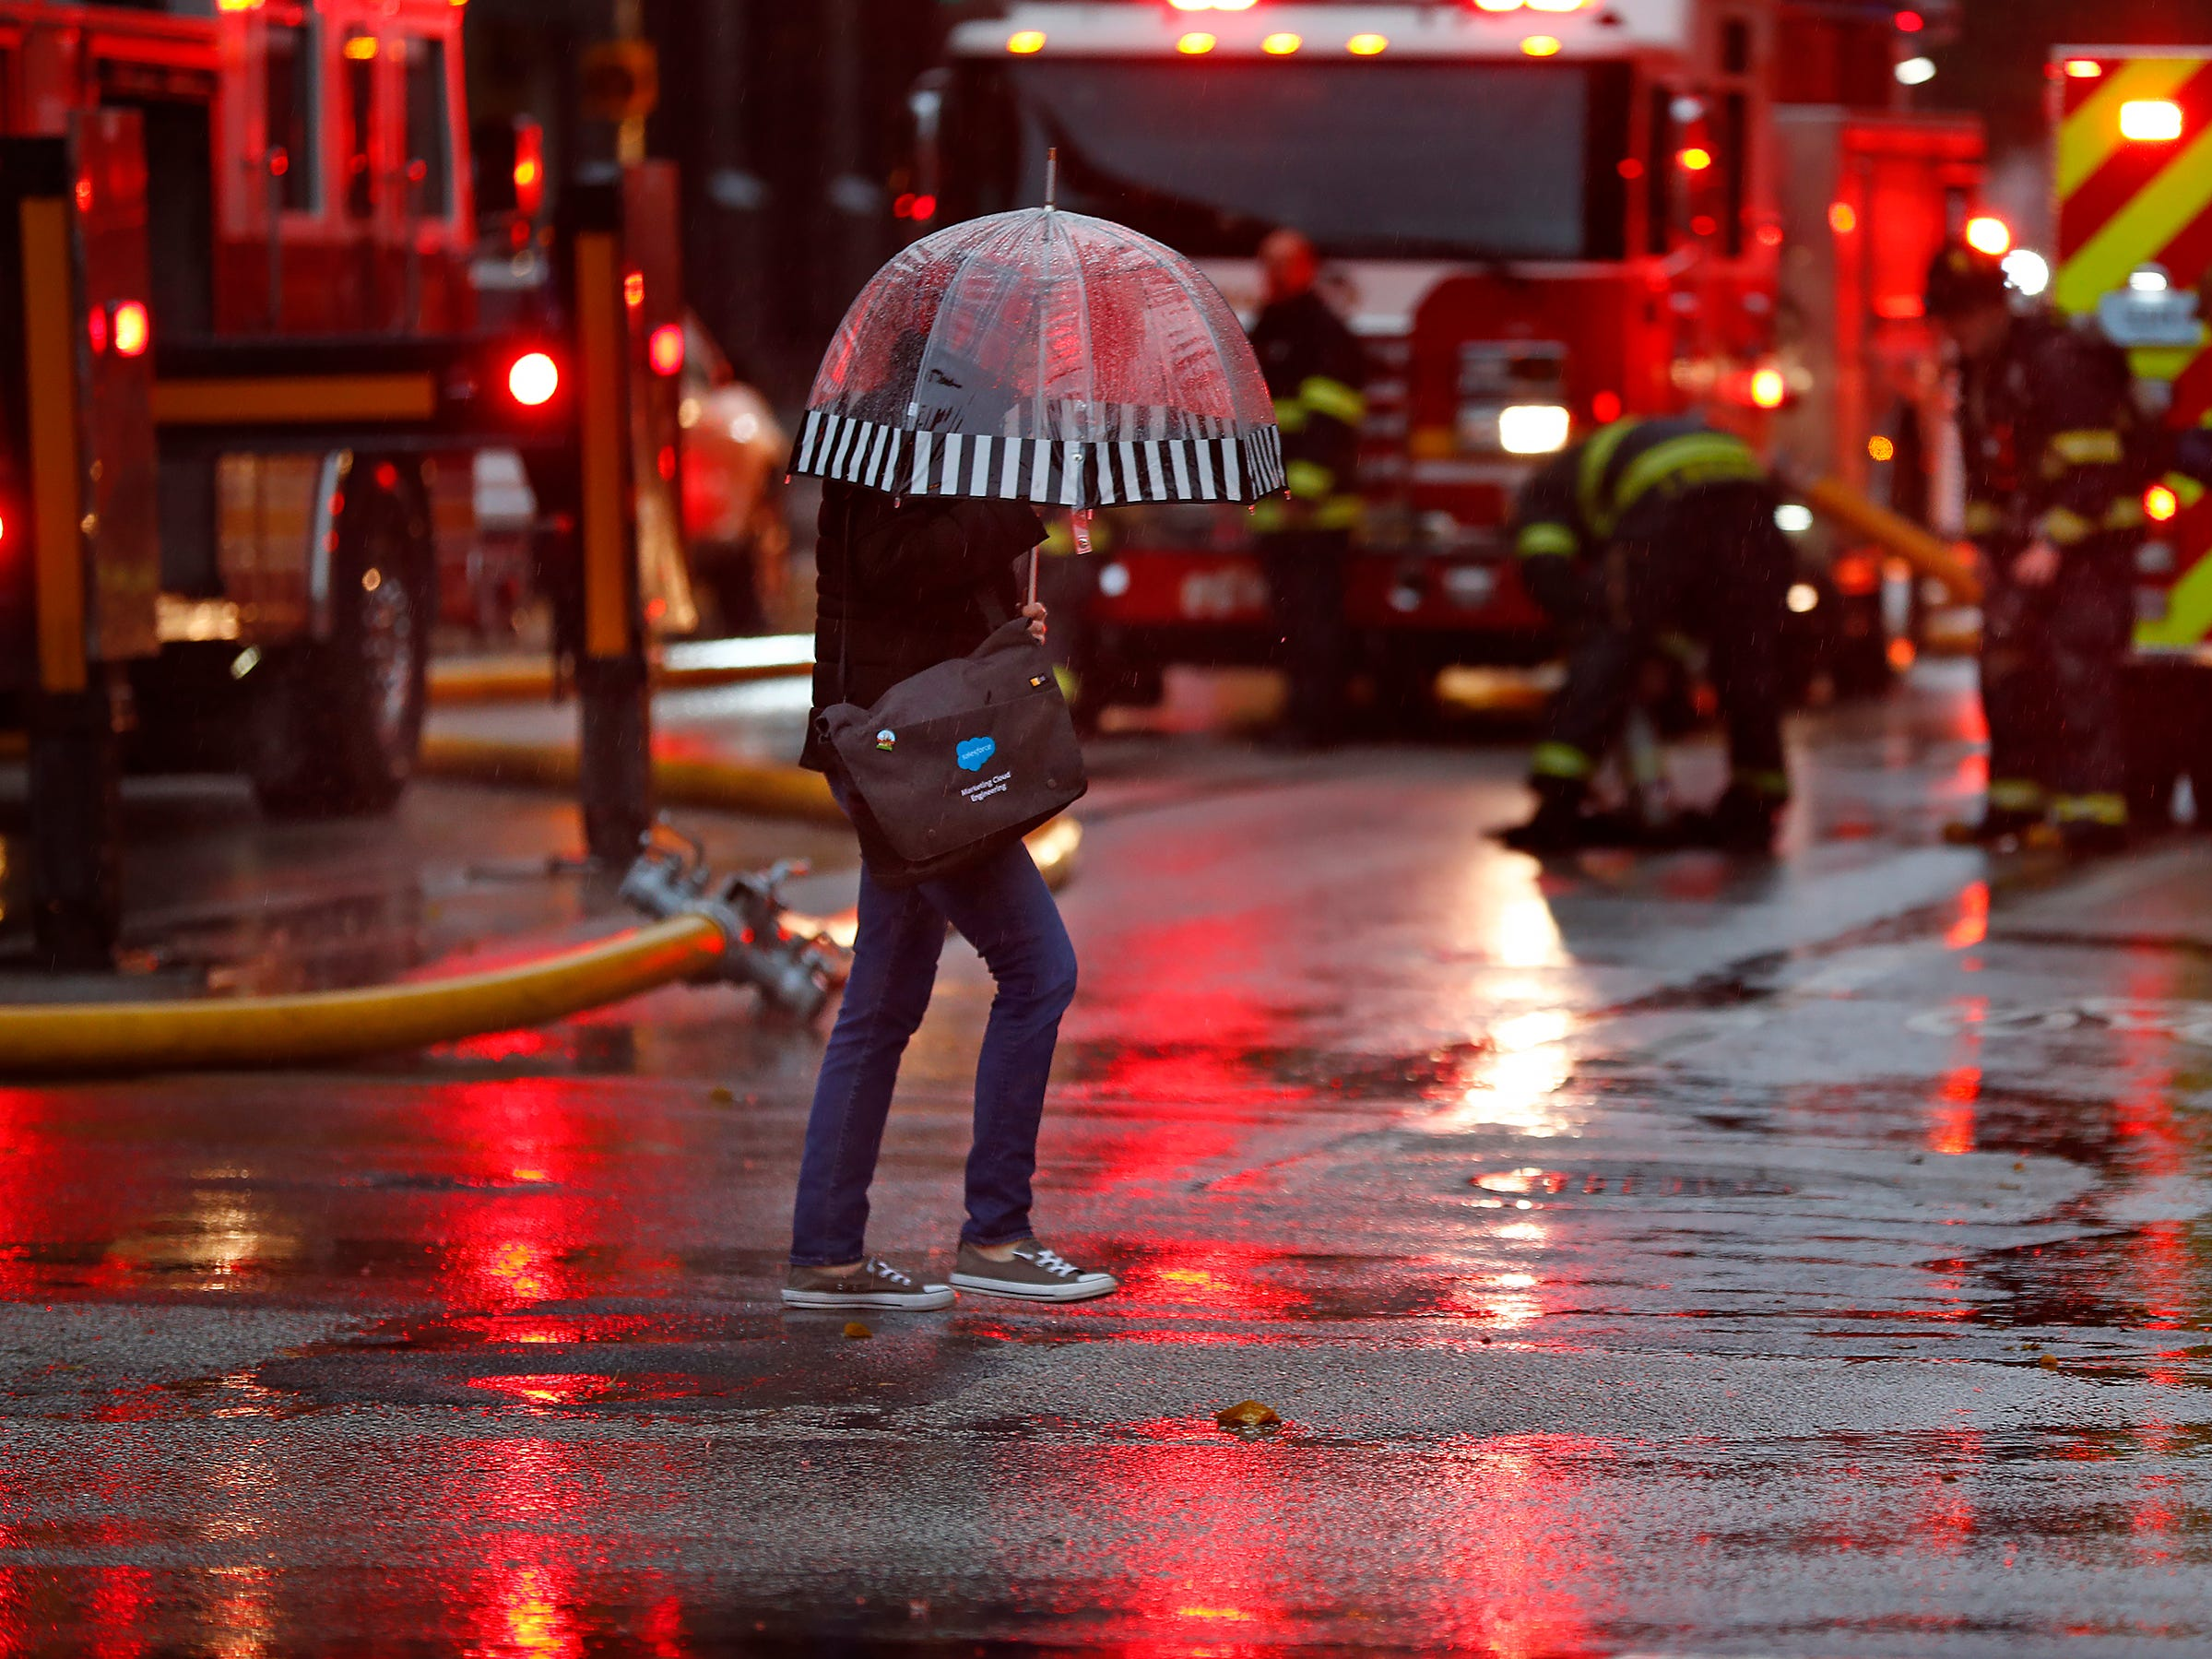 A pedestrian crosses New York on a rain-soaked street red with emergency vehicle lights, as IFD fights a car fire in a parking garage at Illinois and New York, Thursday, Nov. 1, 2018.